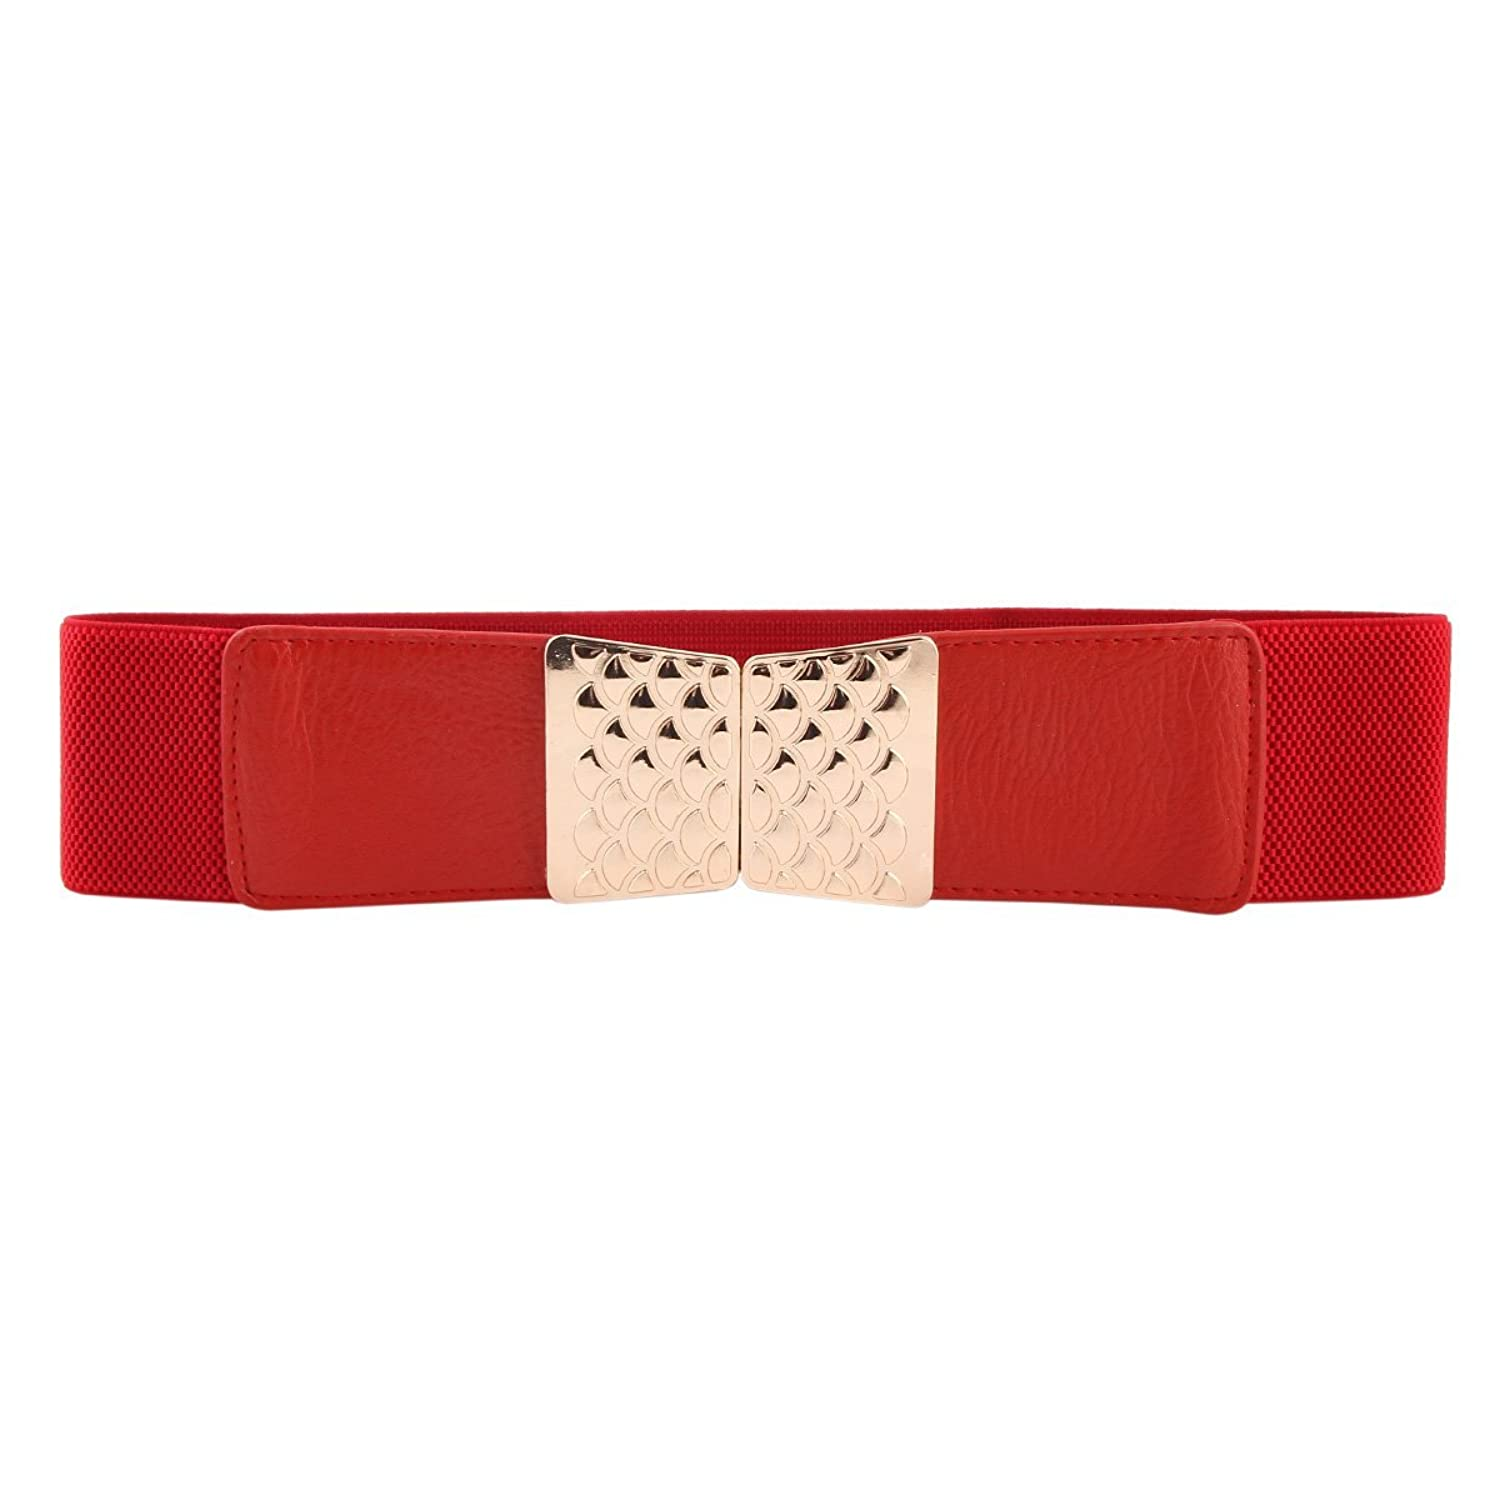 Damara Women Squama Interlocking Buckle Stretch Elastic Belt